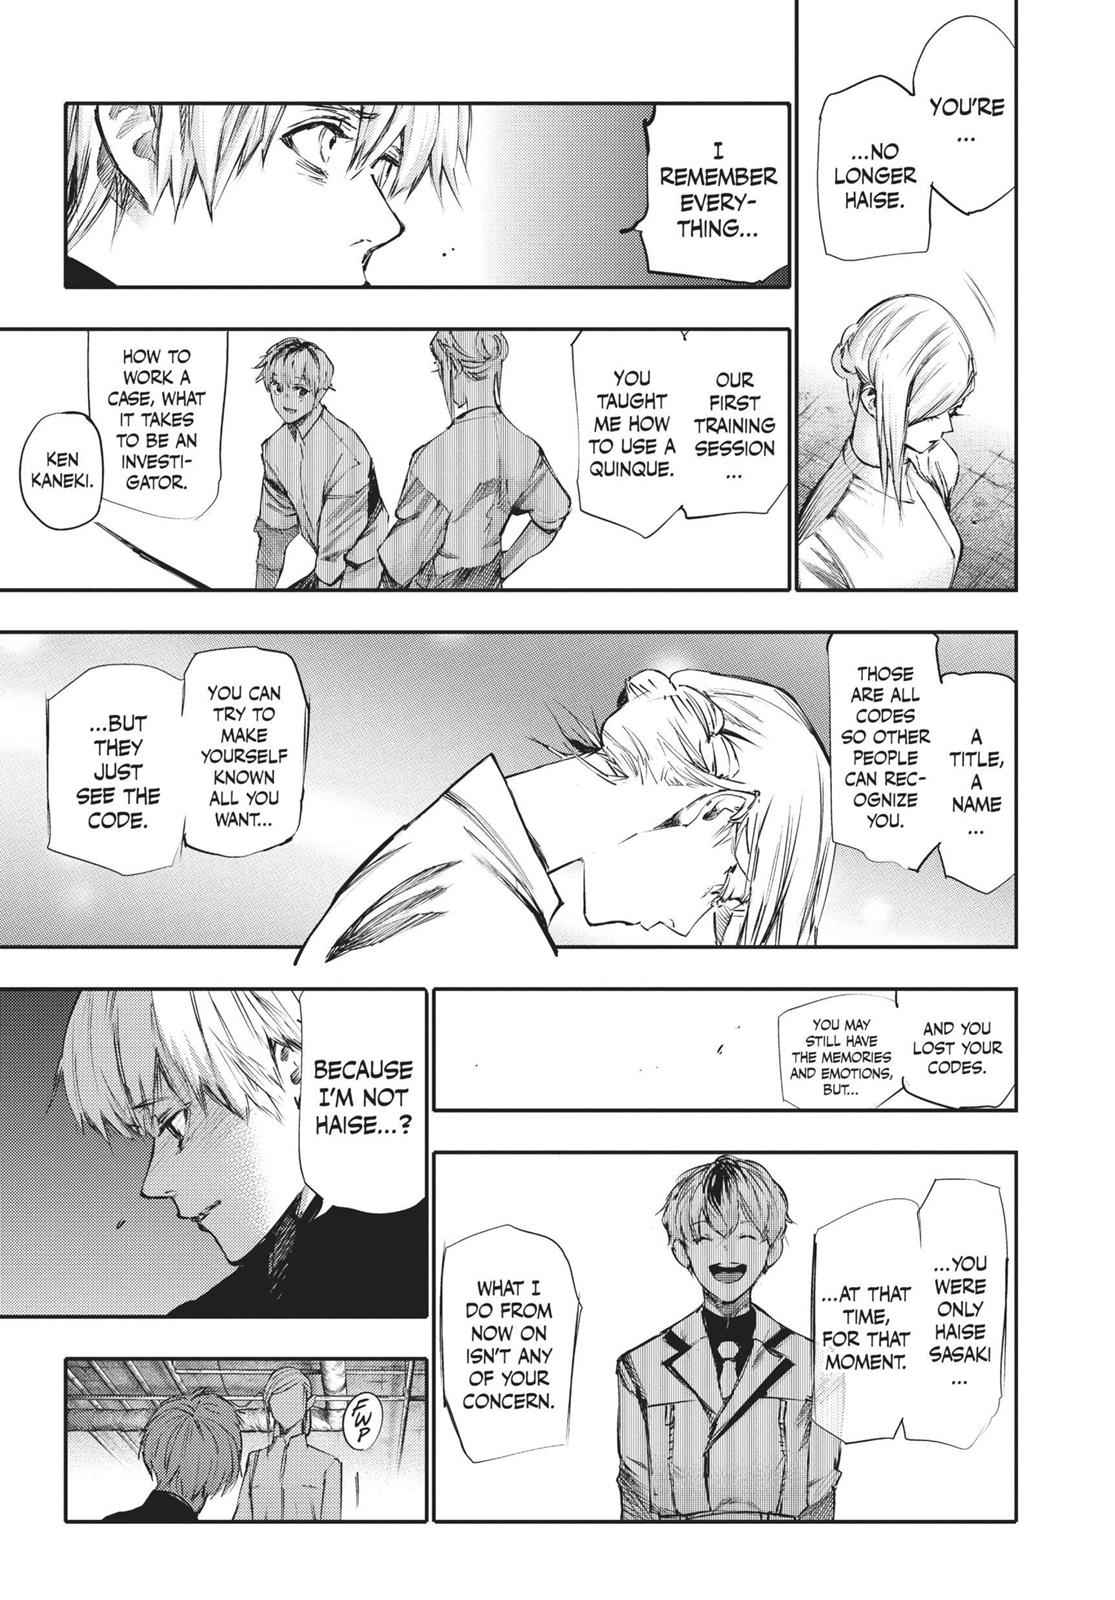 Tokyo Ghoul:re Chapter 121 Page 3